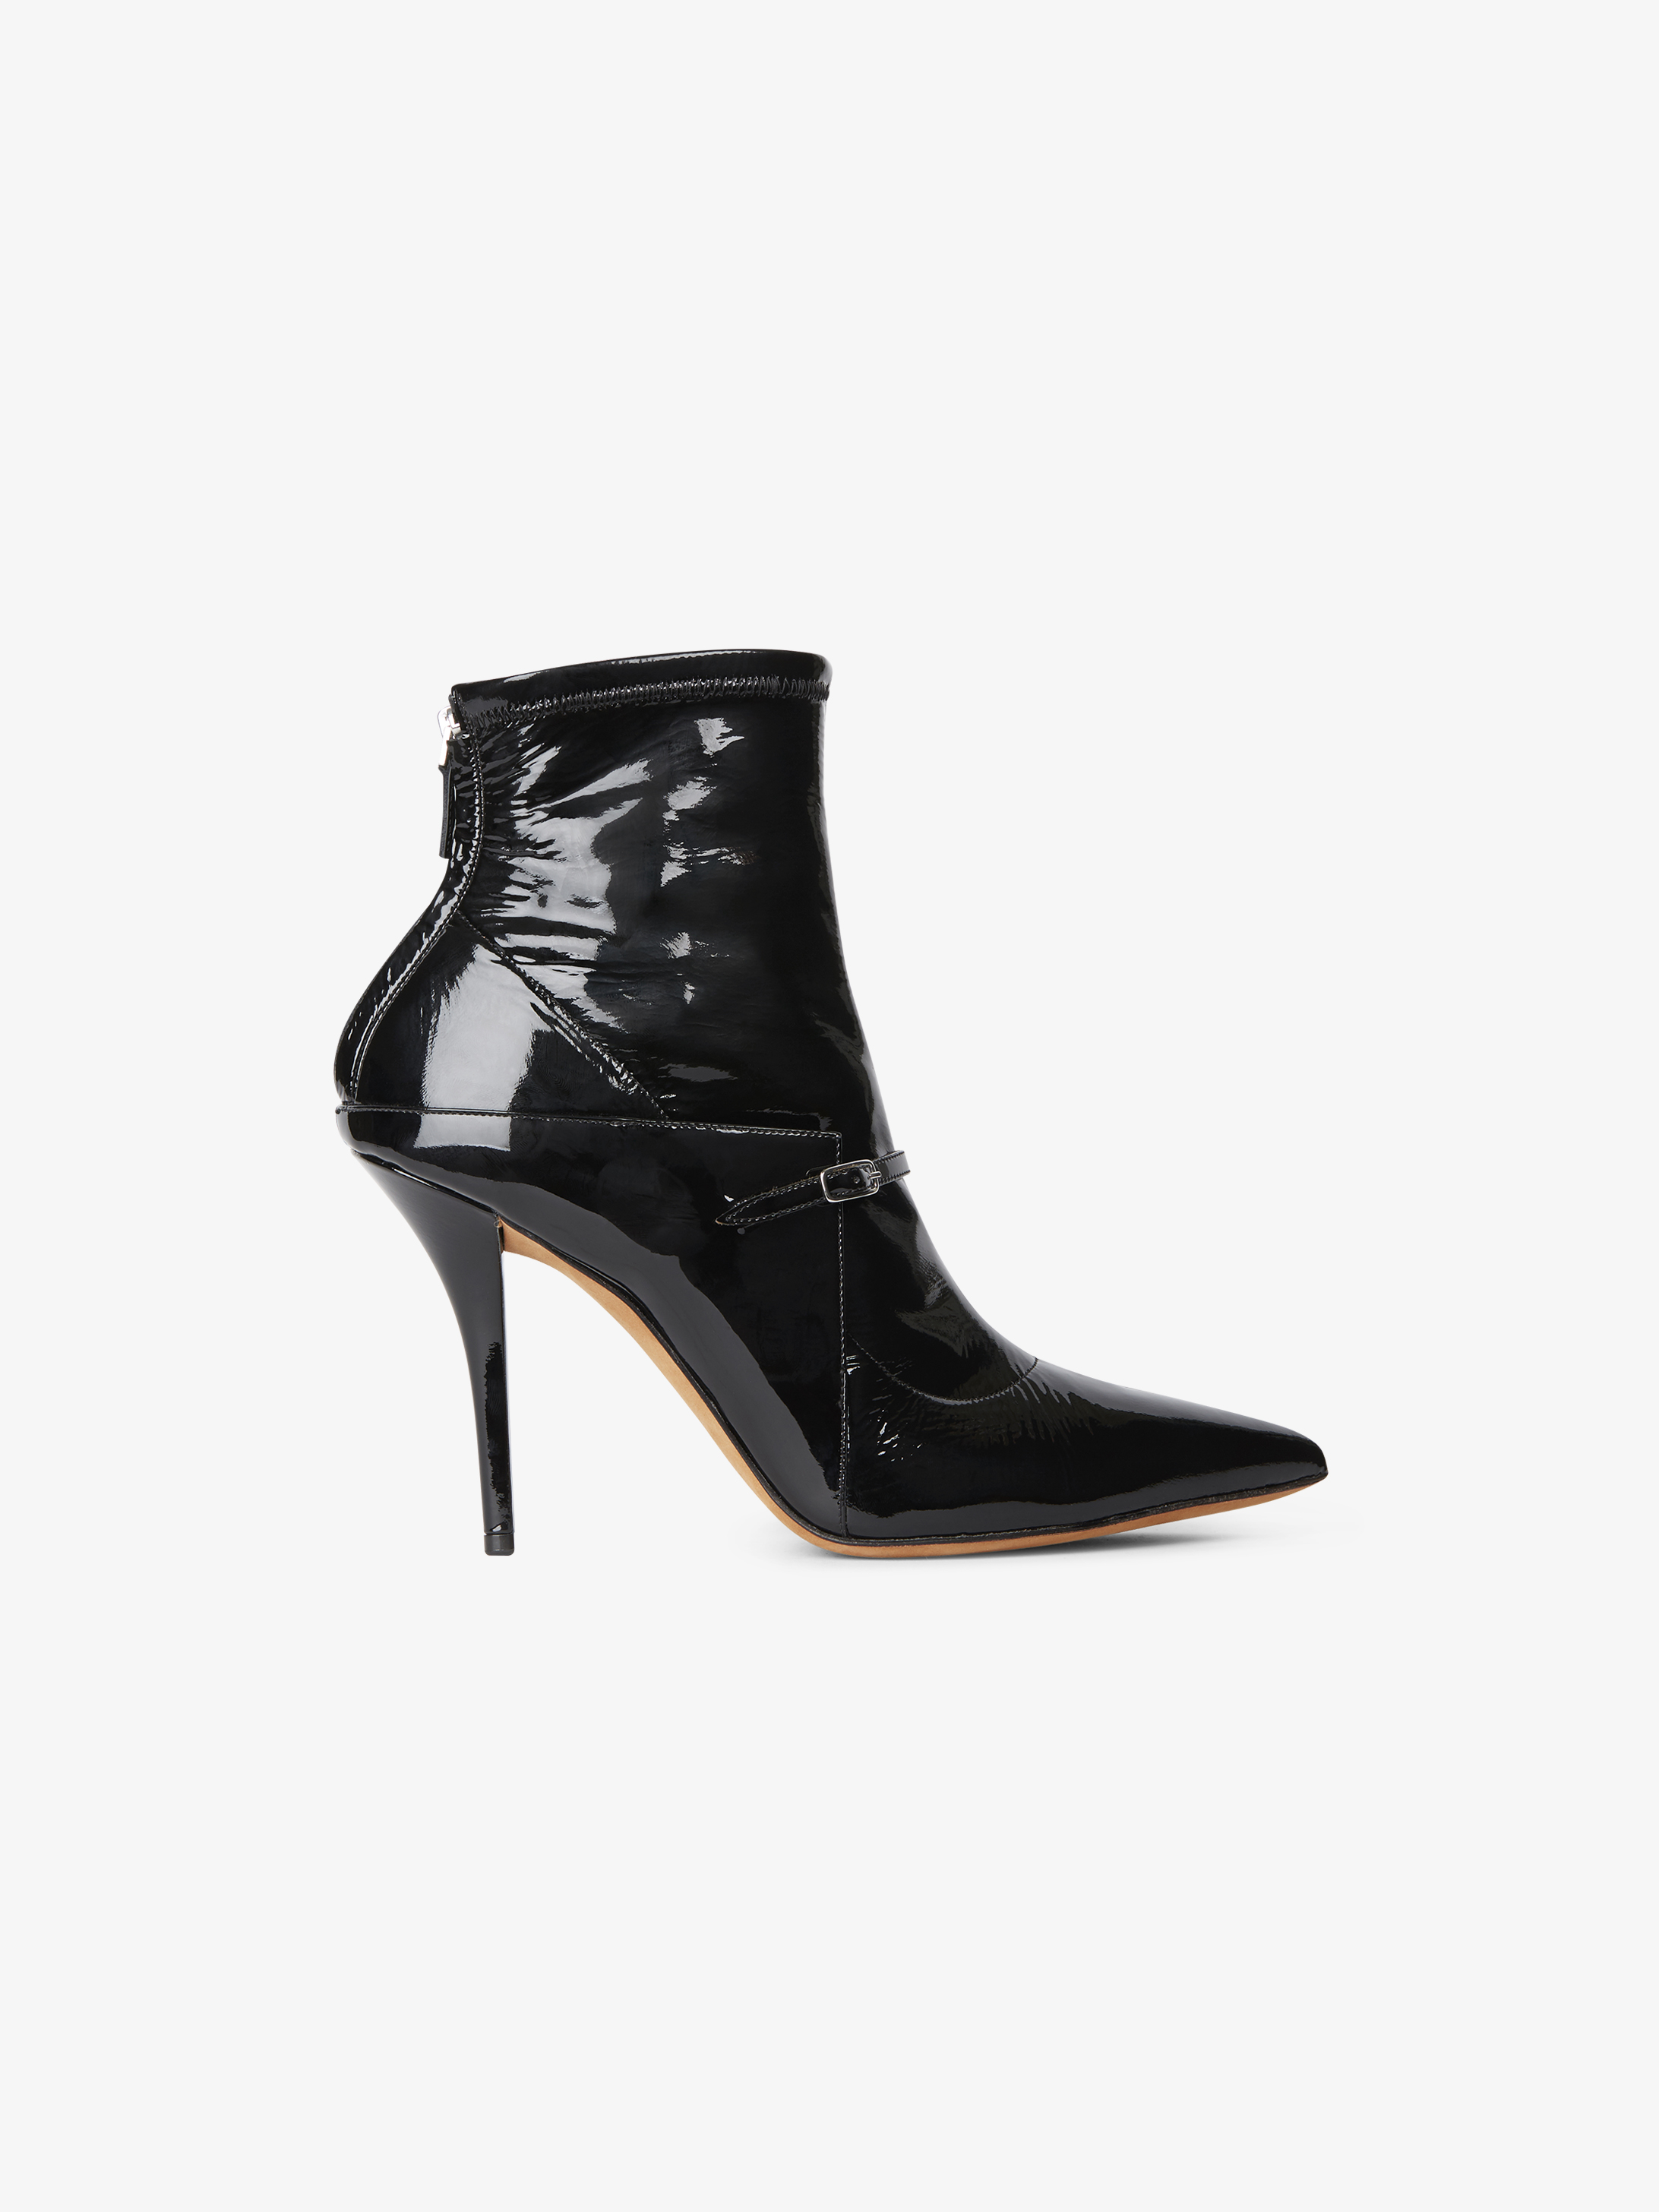 Bottines New Feminine en cuir vernis